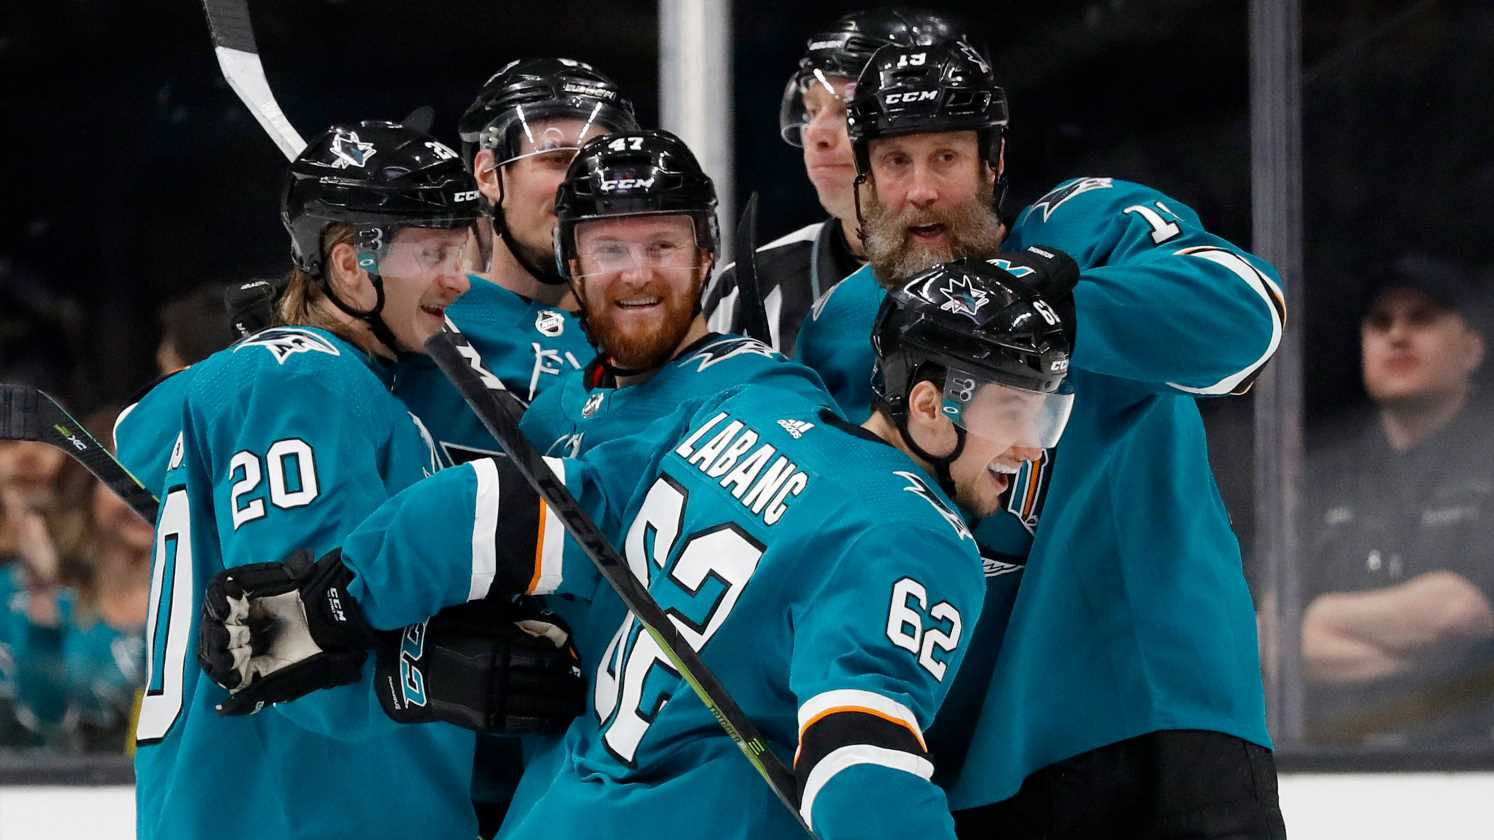 Red-hot Sharks forward Kevin Labanc scores gorgeous Game 1 goal against Avalanche